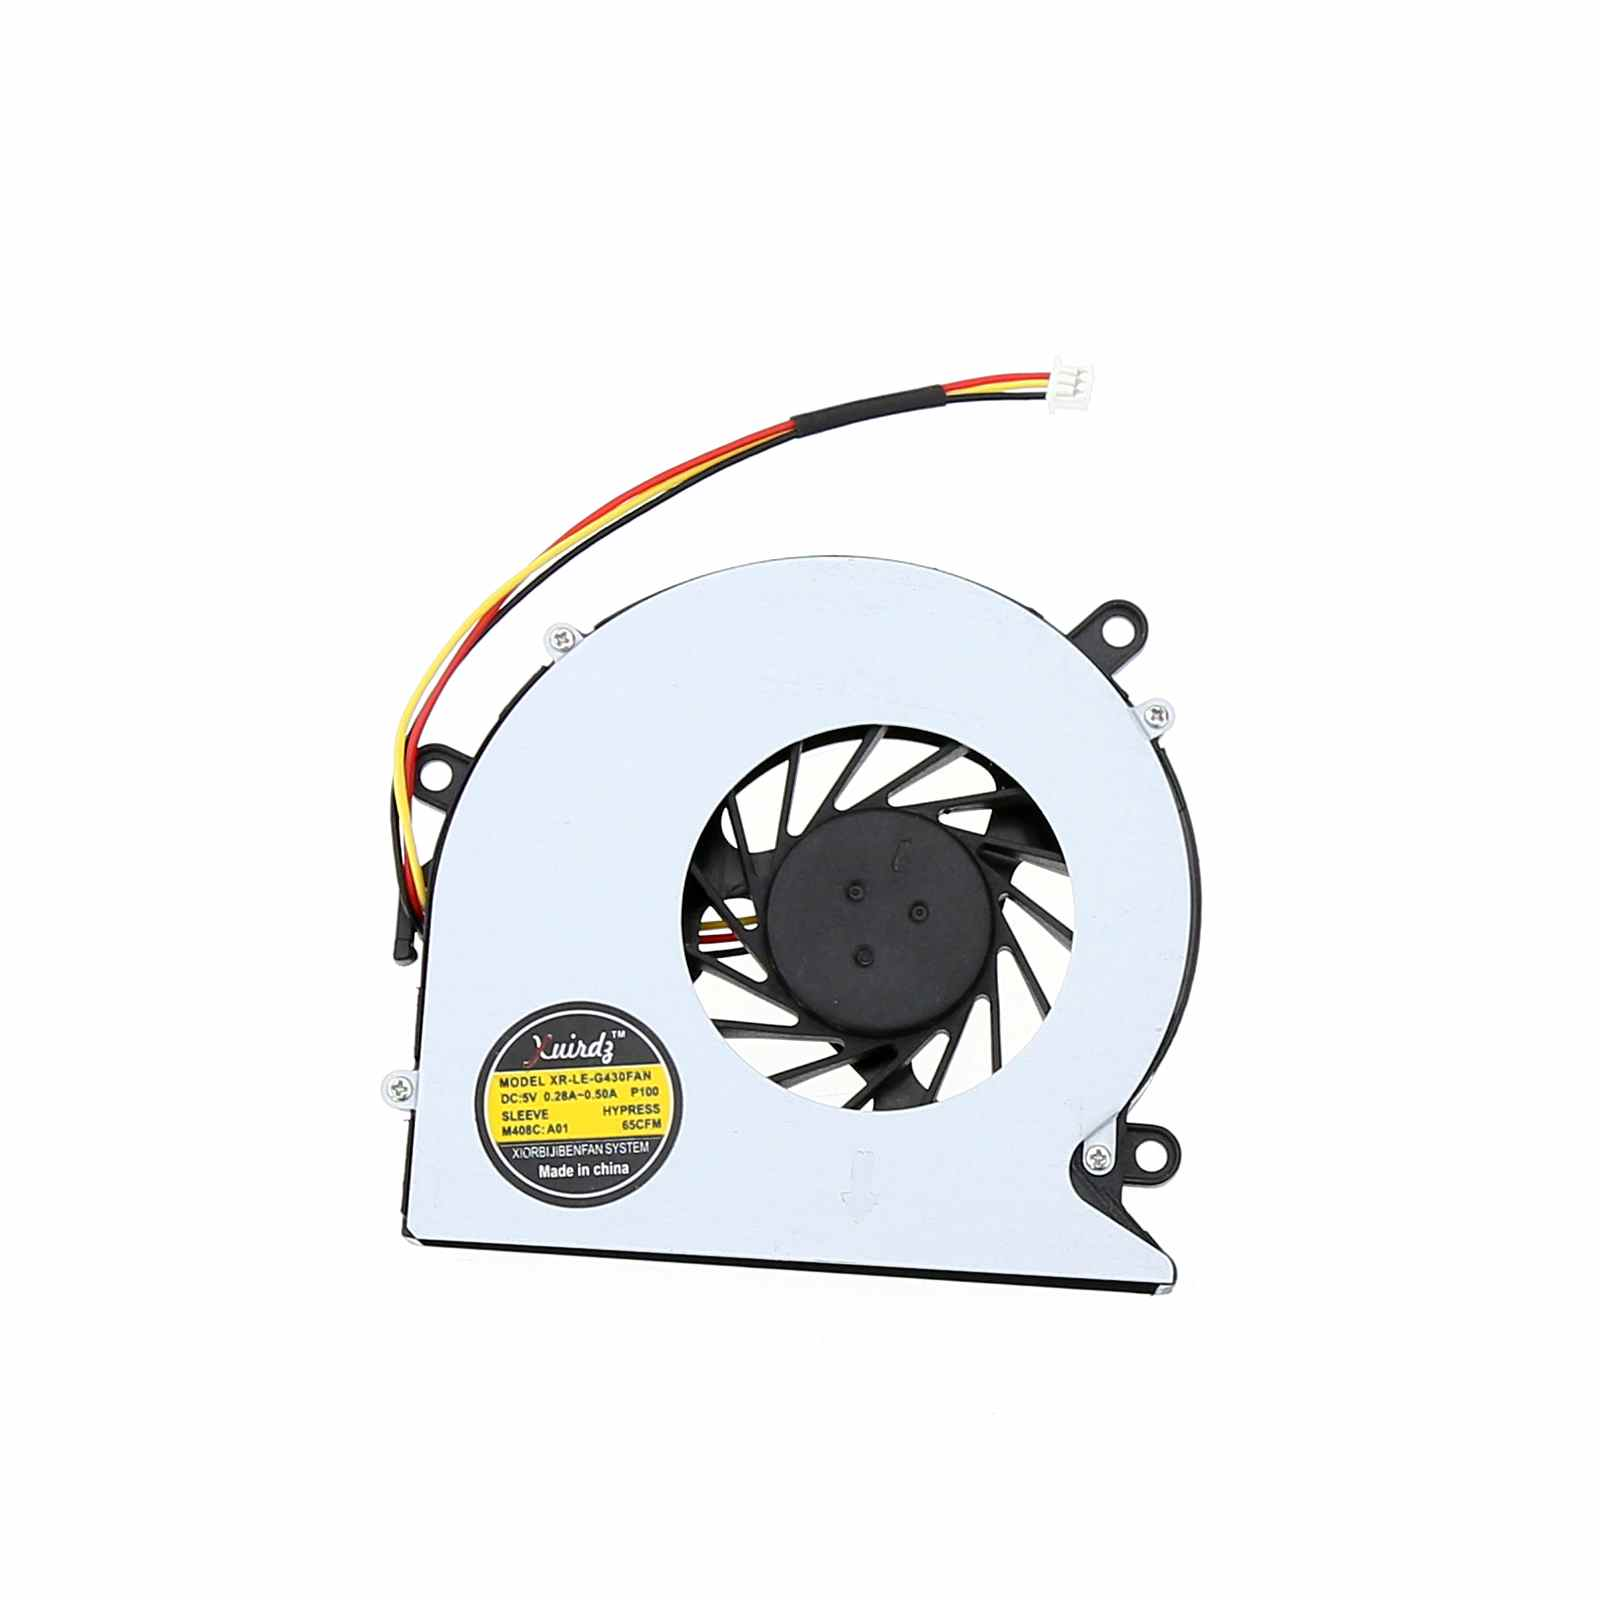 все цены на Brand New and original CPU cooling fan for Acer Aspire 5520 5315 5220 5520 5720 7220 7520 7720 laptop fan онлайн